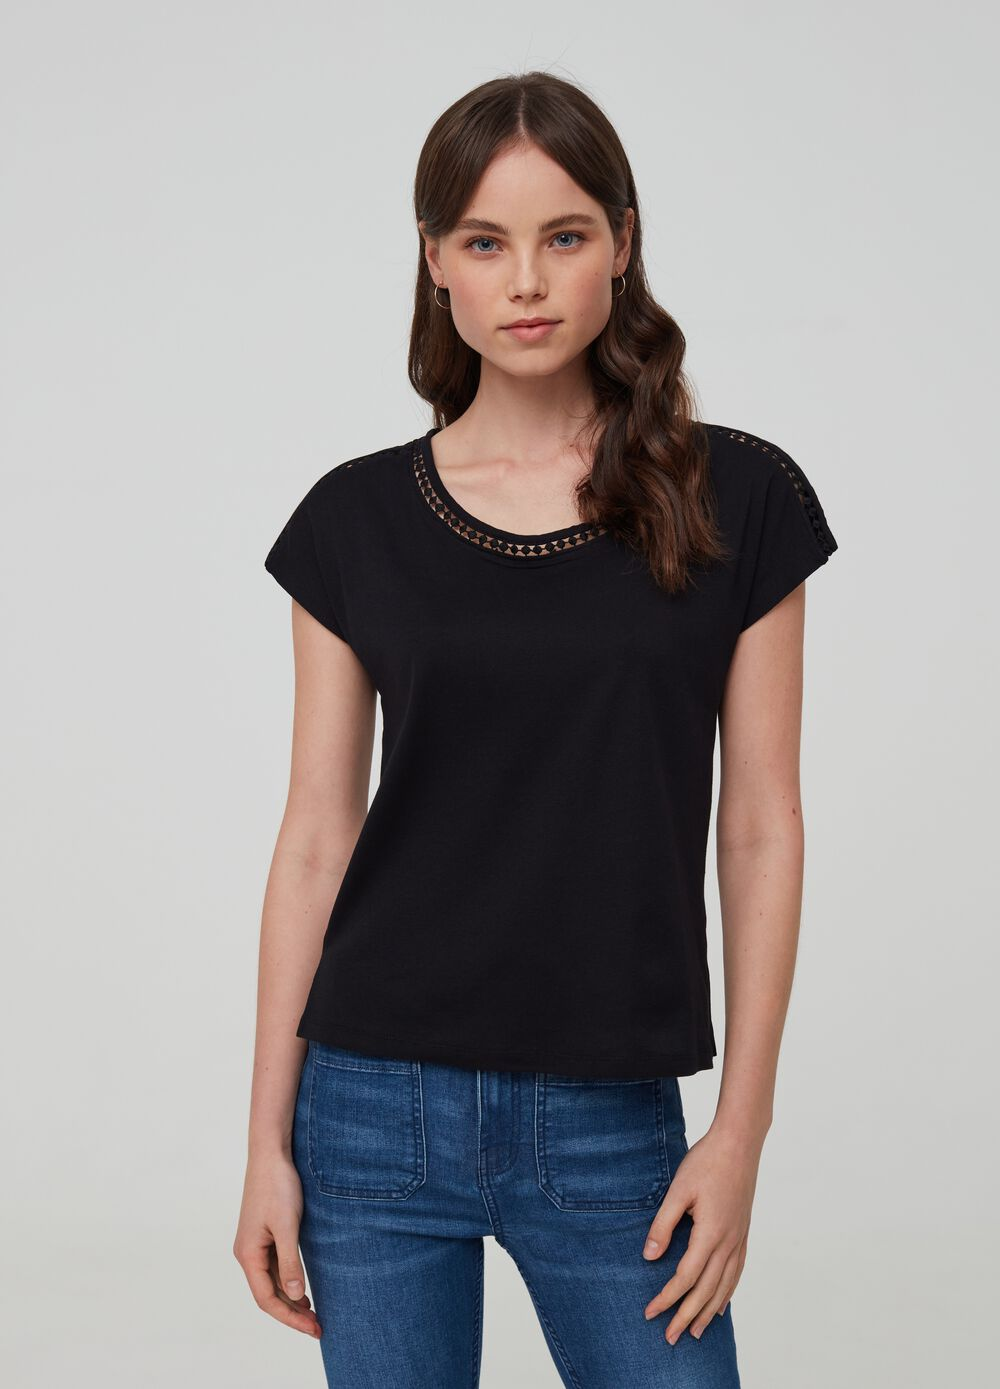 100% organic cotton T-shirt with embroidery